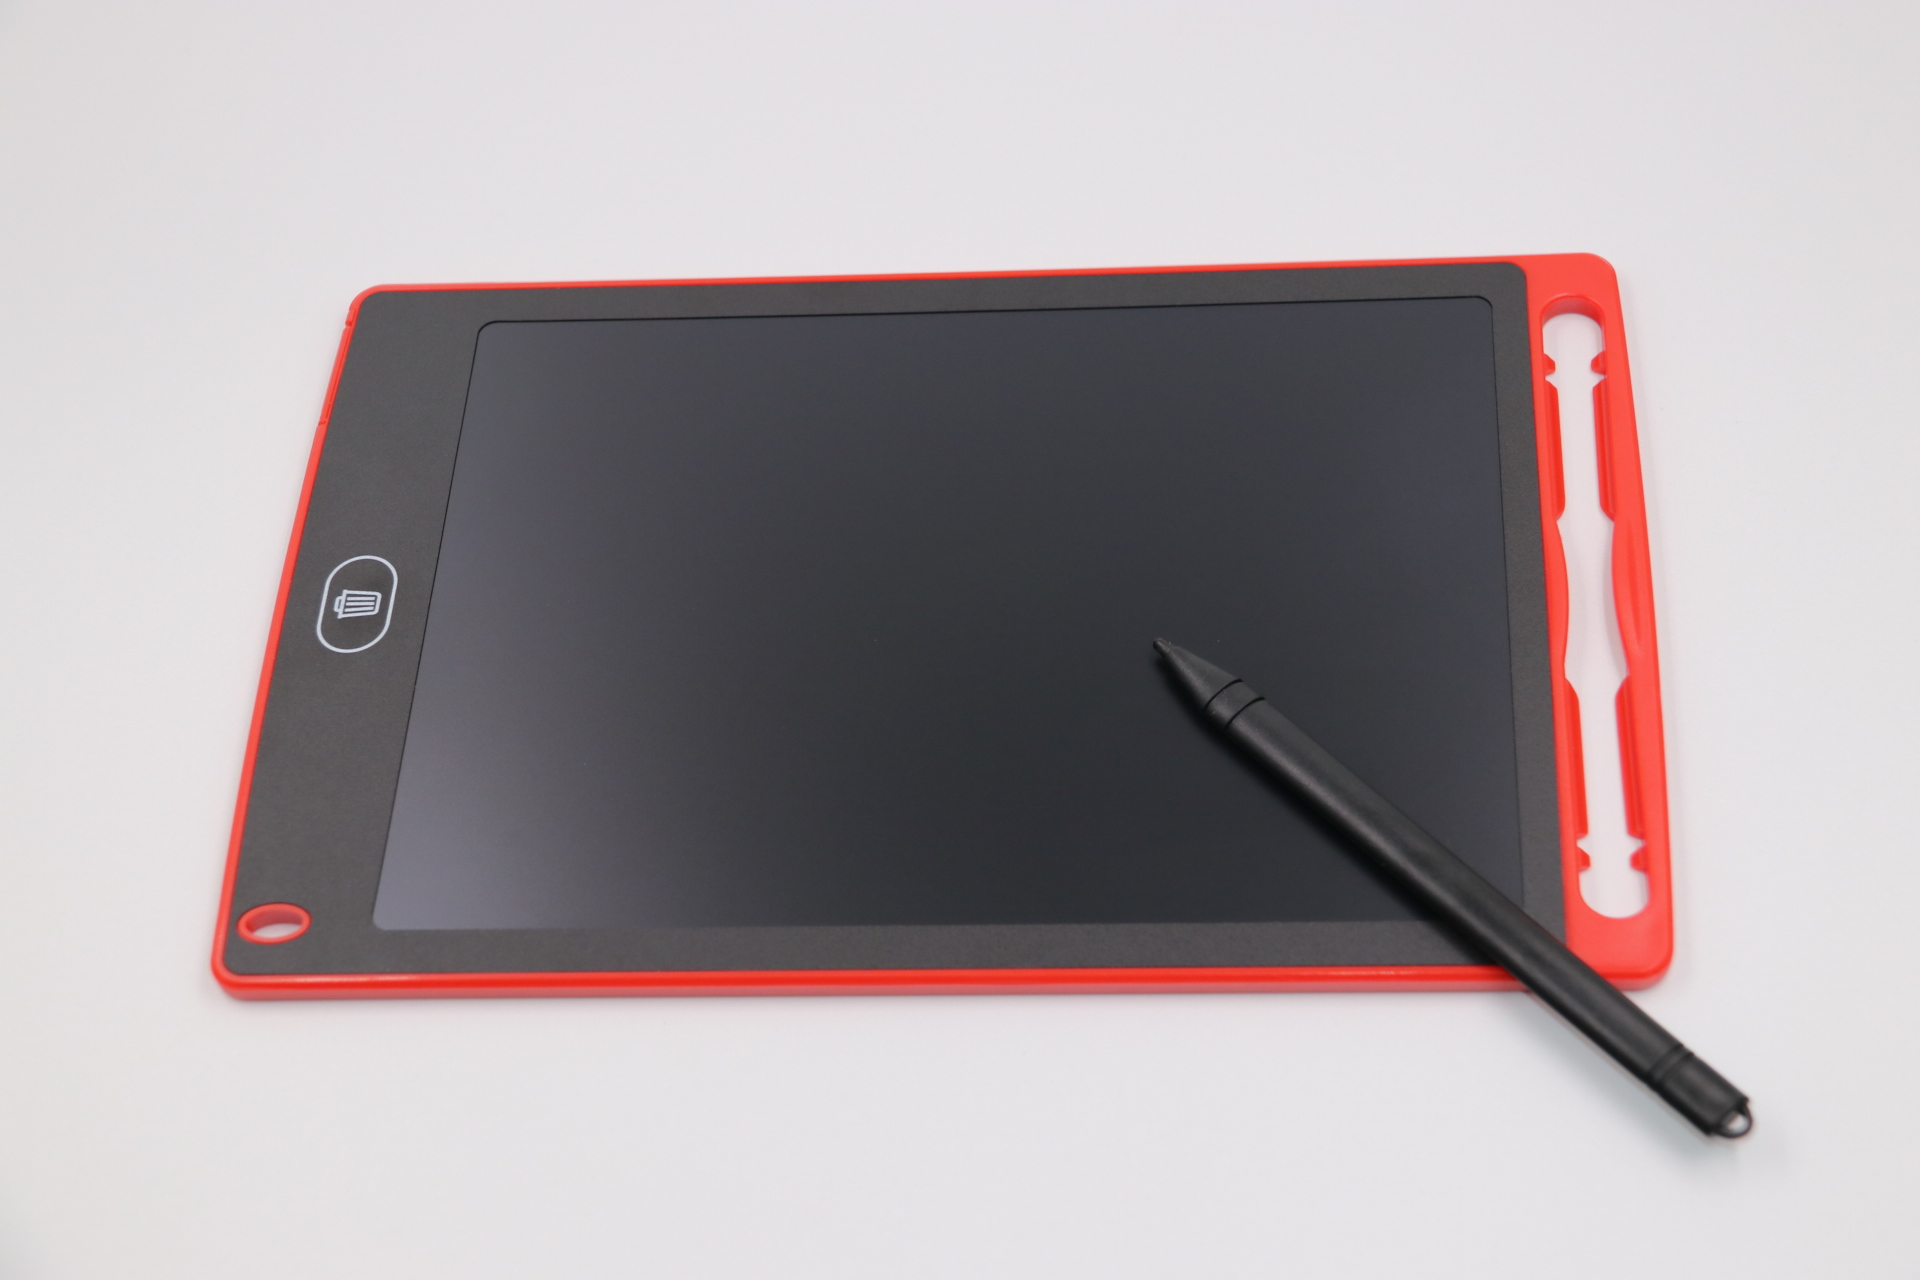 8 5 Inch Kids Electronic Drawing Tablet (Flexible LCD